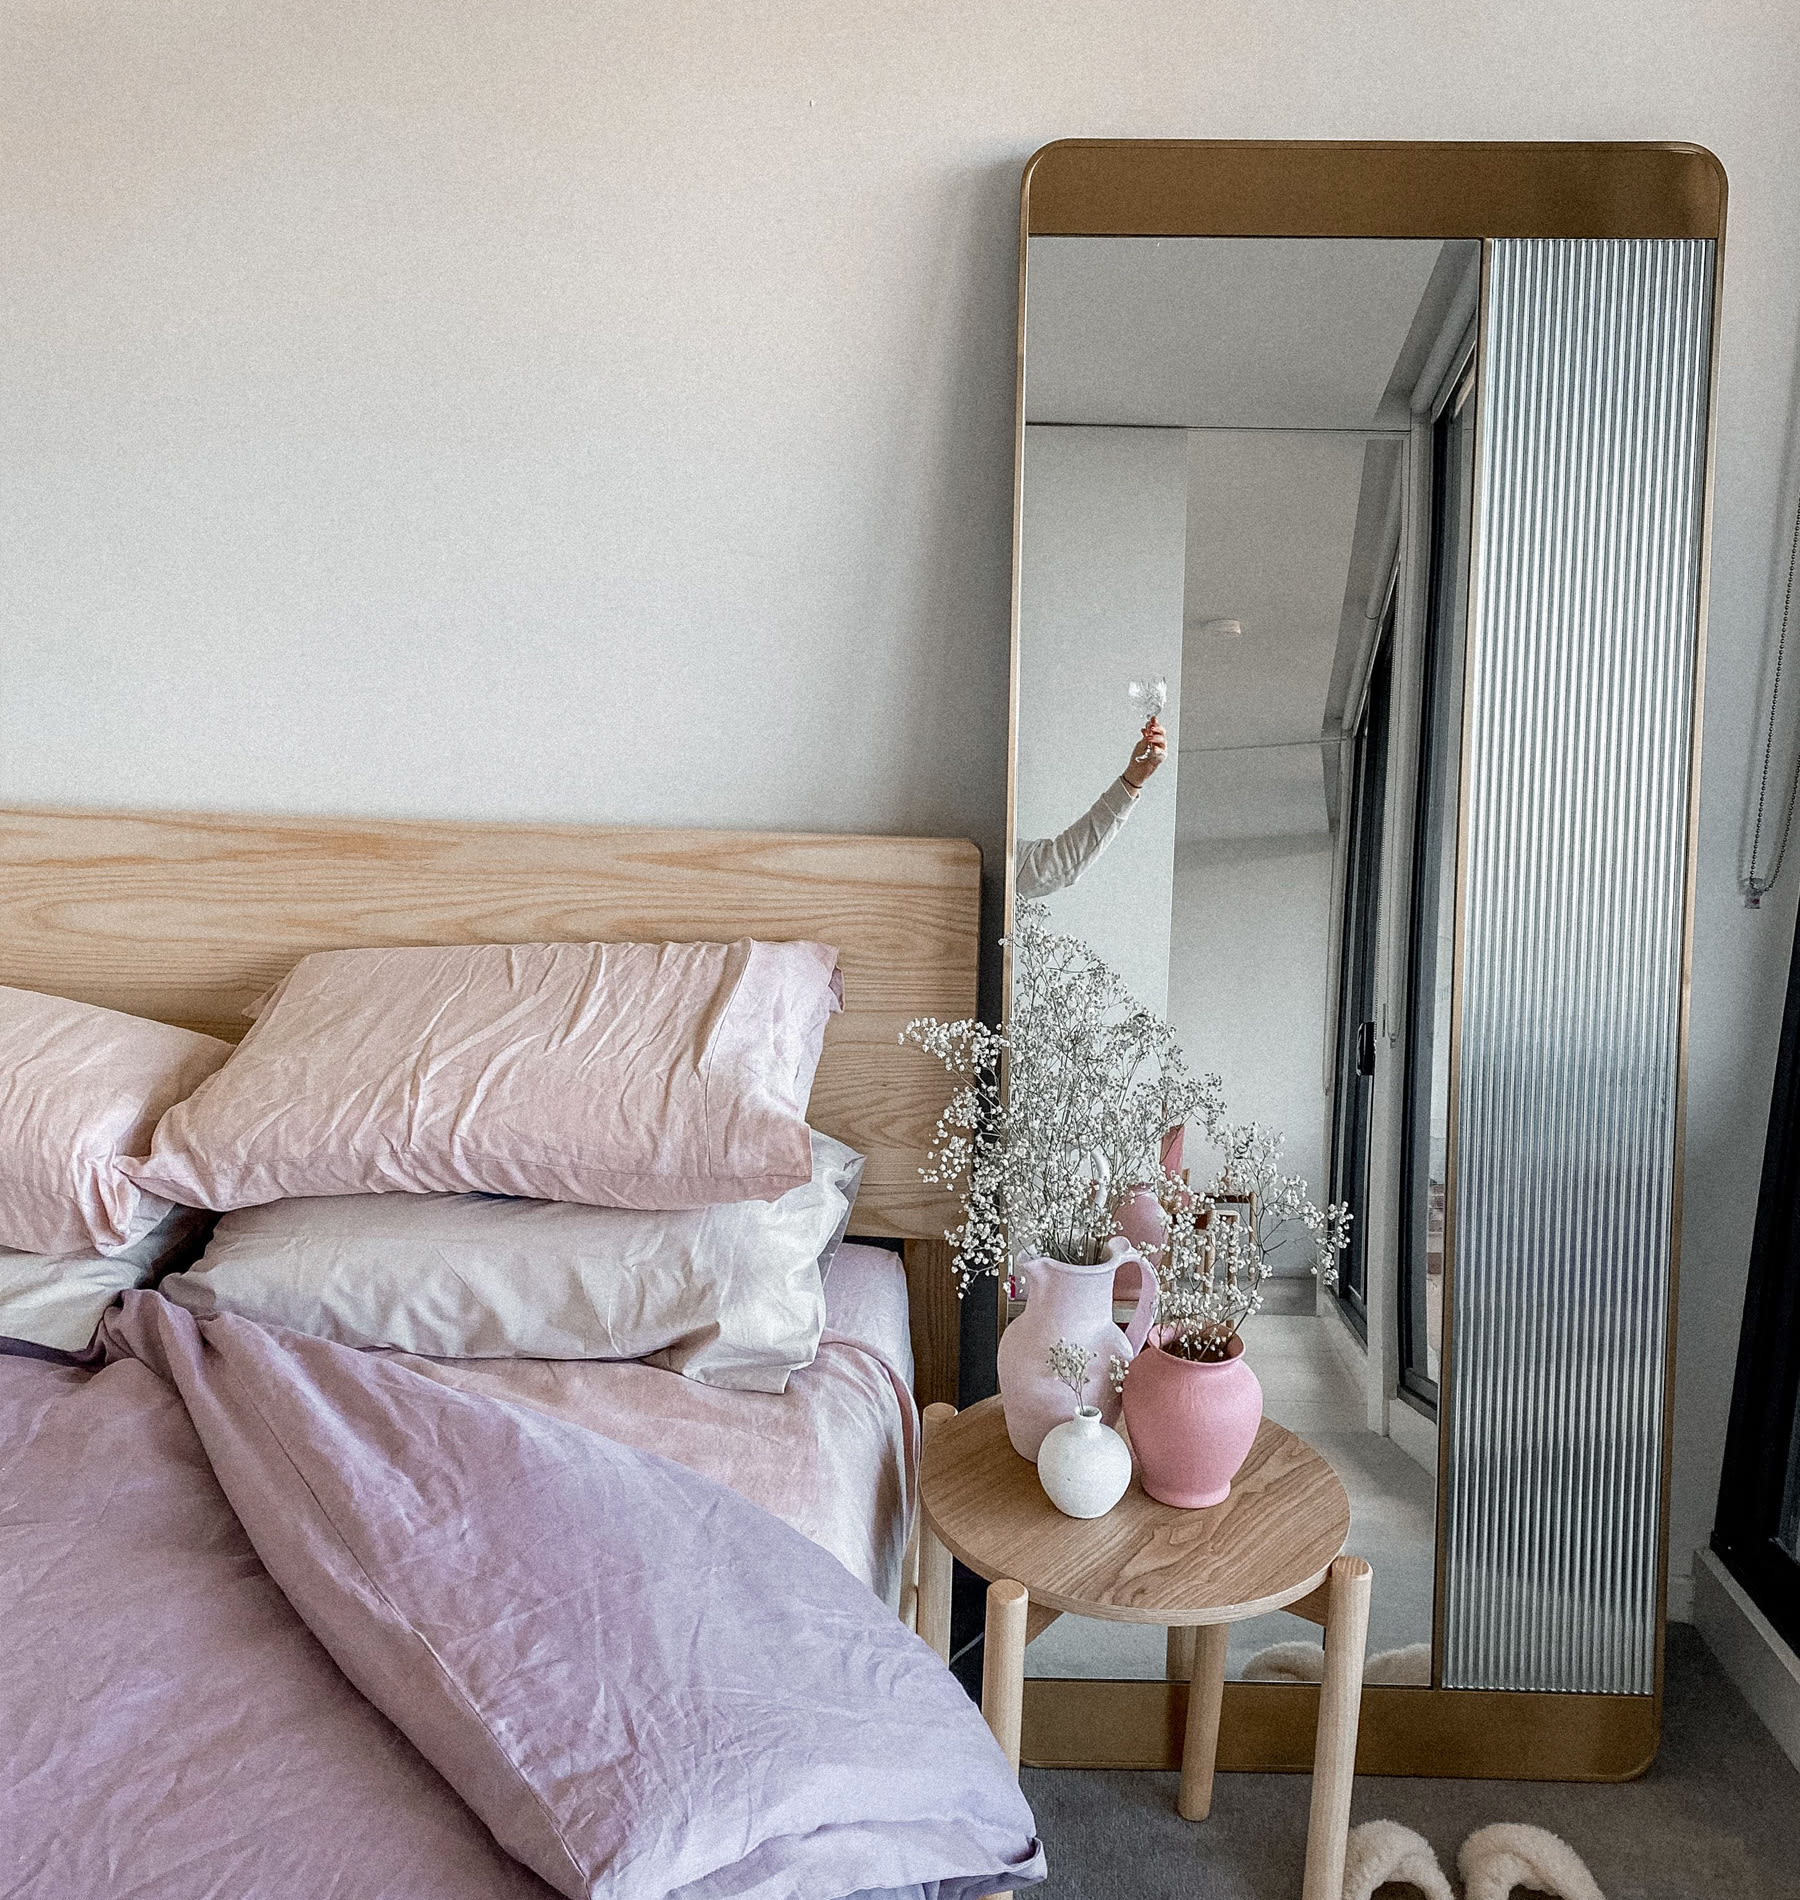 standing mirror with ribbed glass detail in bedroom next to bed and bedside table